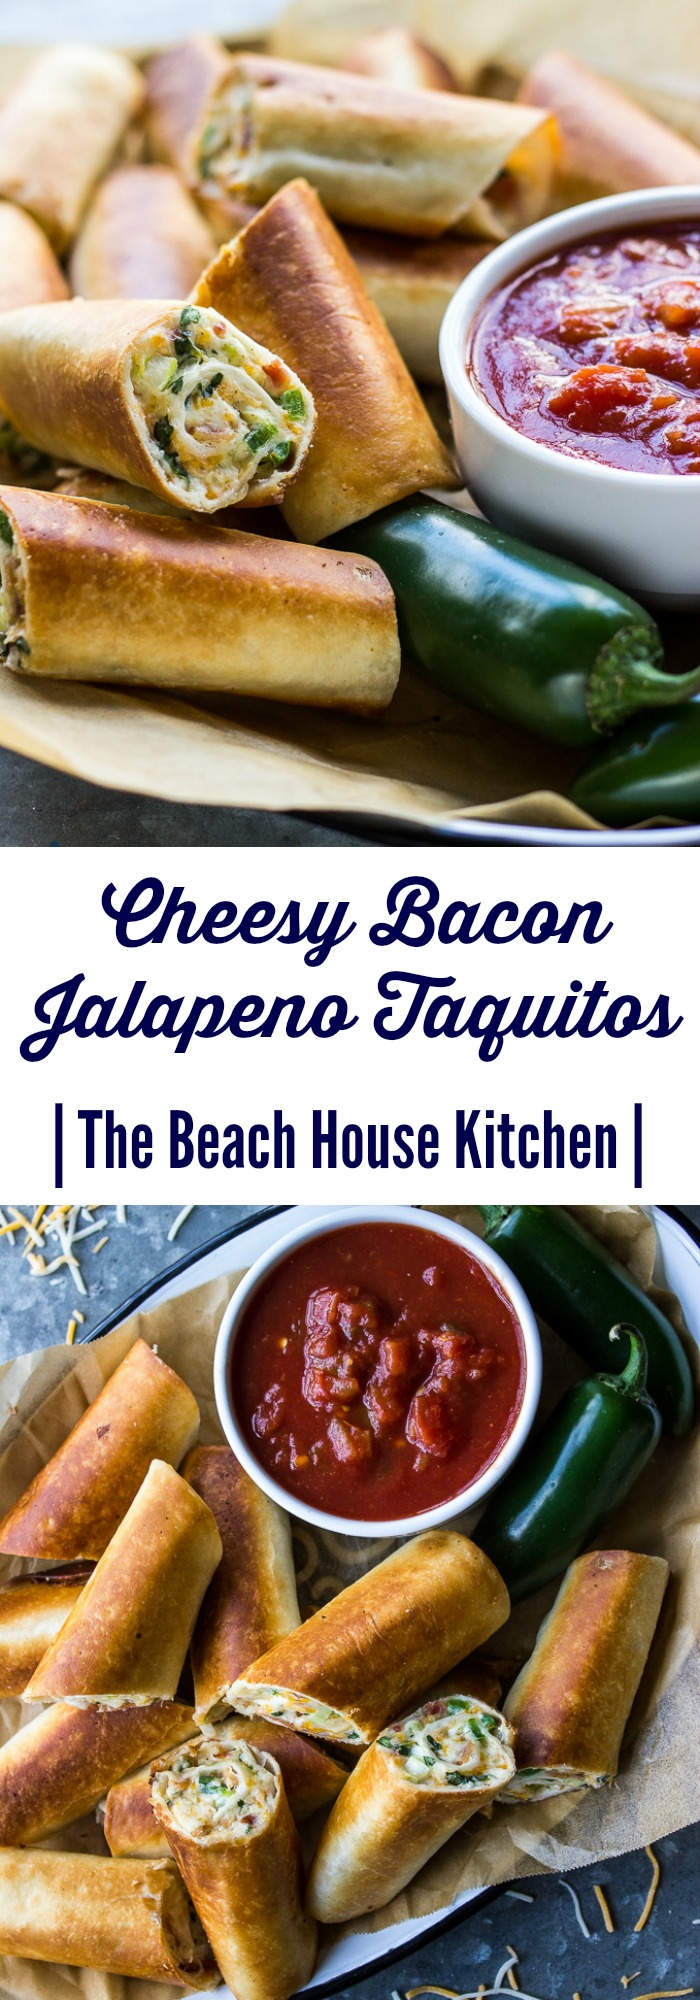 Cheesy Bacon Jalapeño Taquitos